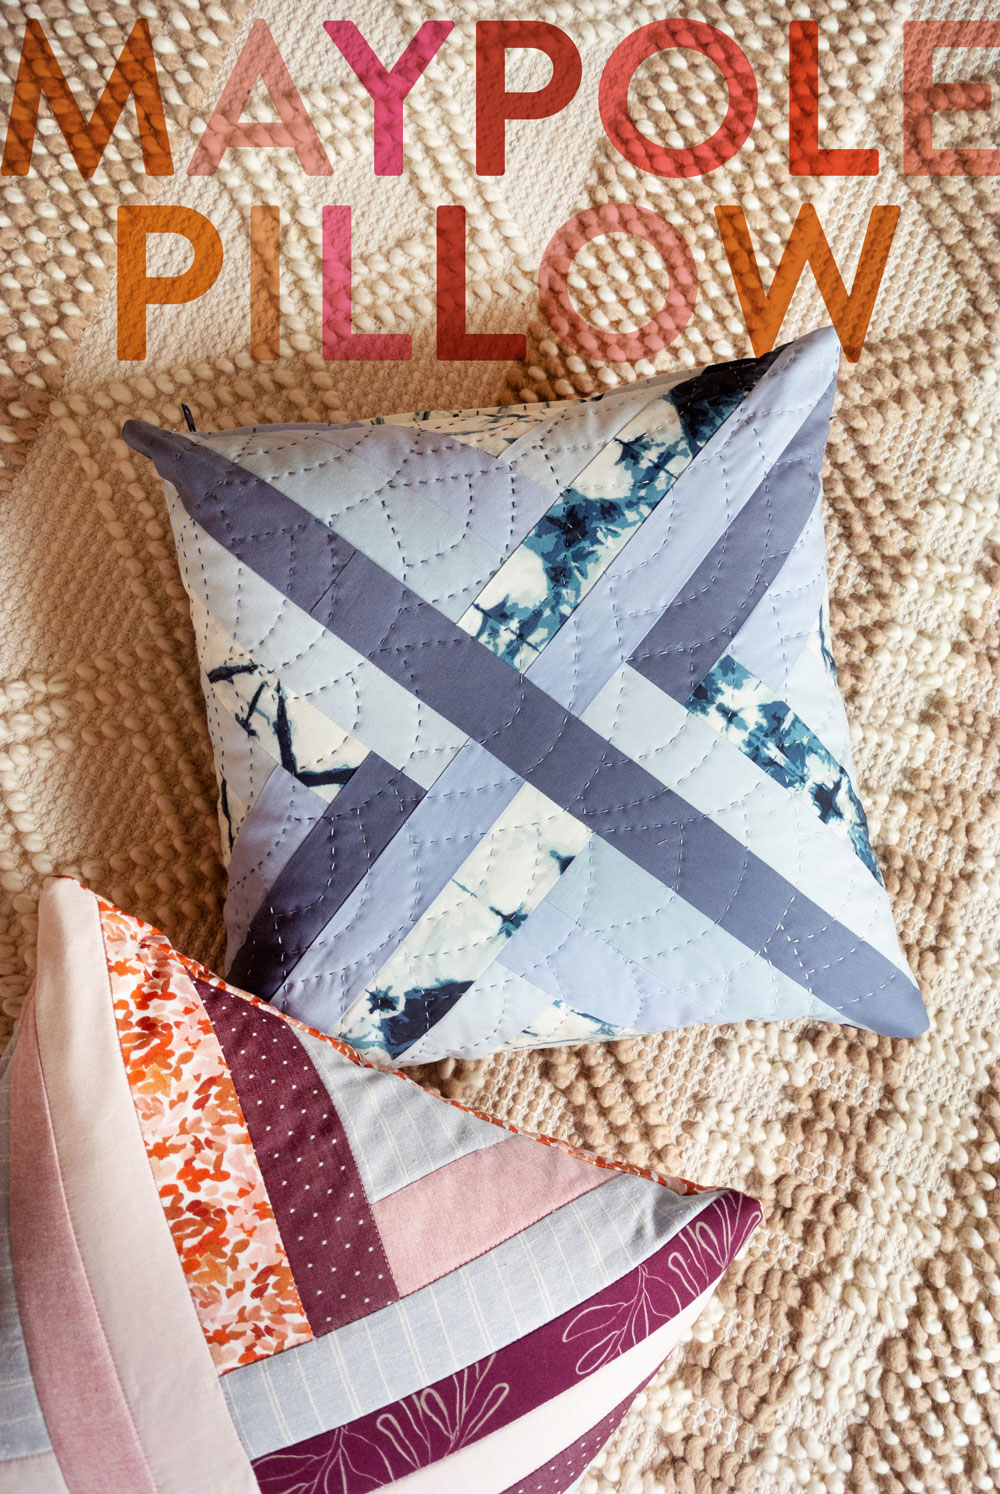 3 fun and fresh quilted pillow patterns for a modern look. Easy to follow patterns that are fat quarter friendly or use up scraps! | Suzy Quilts